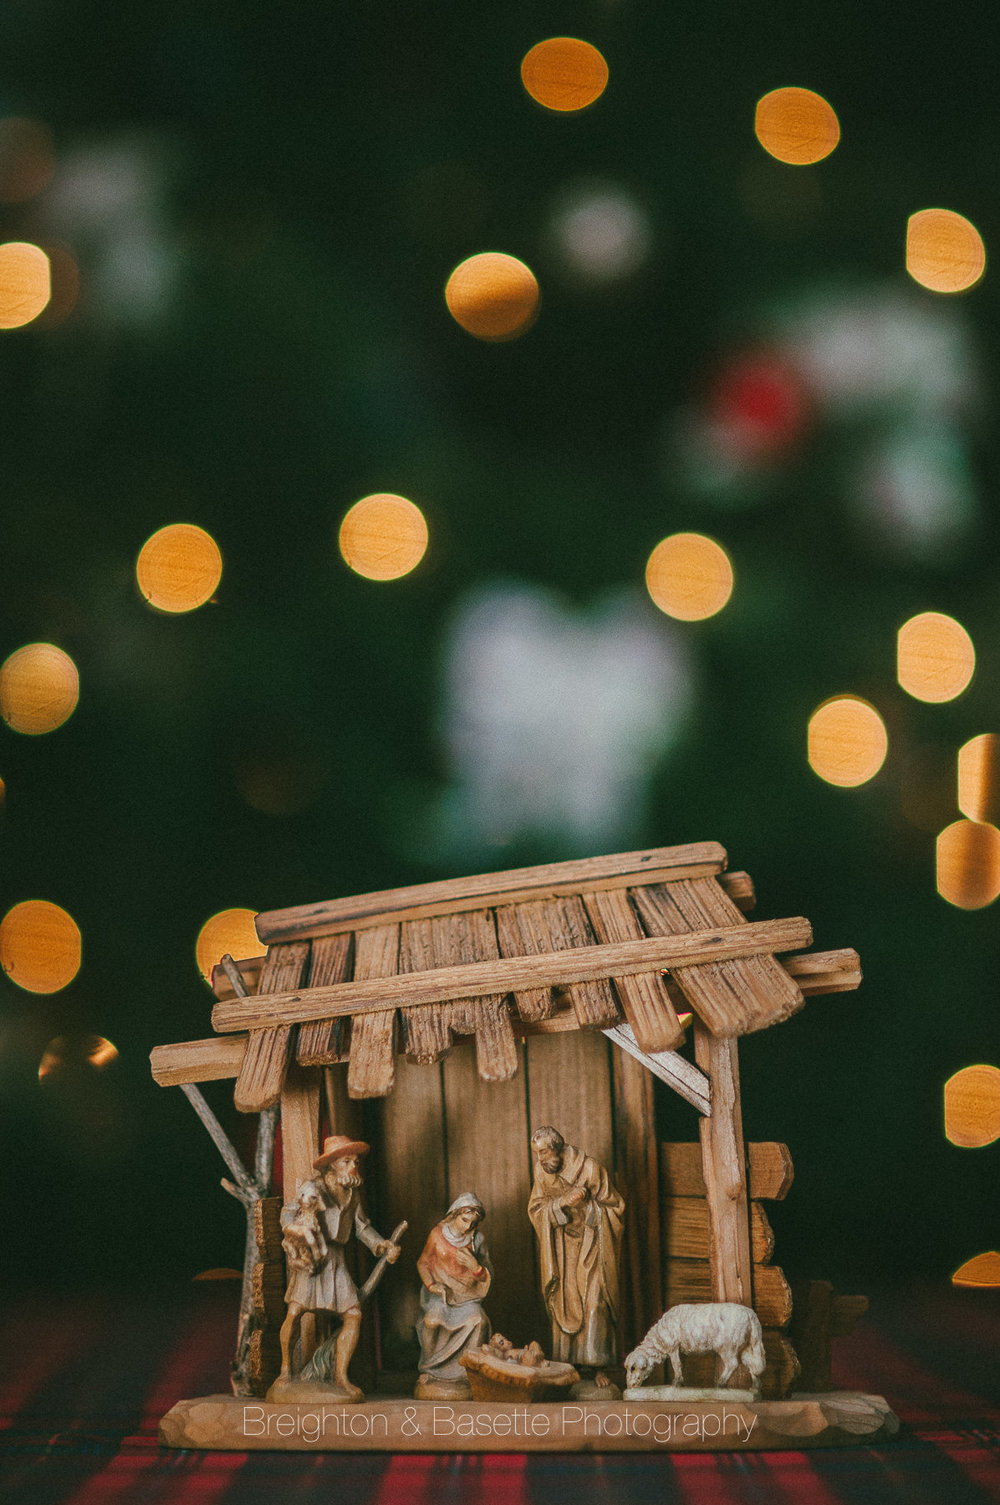 breighton-and-basette-photography-copyrighted-image-blog-christmas-2017-mobile-wallpaper-clickthrough.jpg